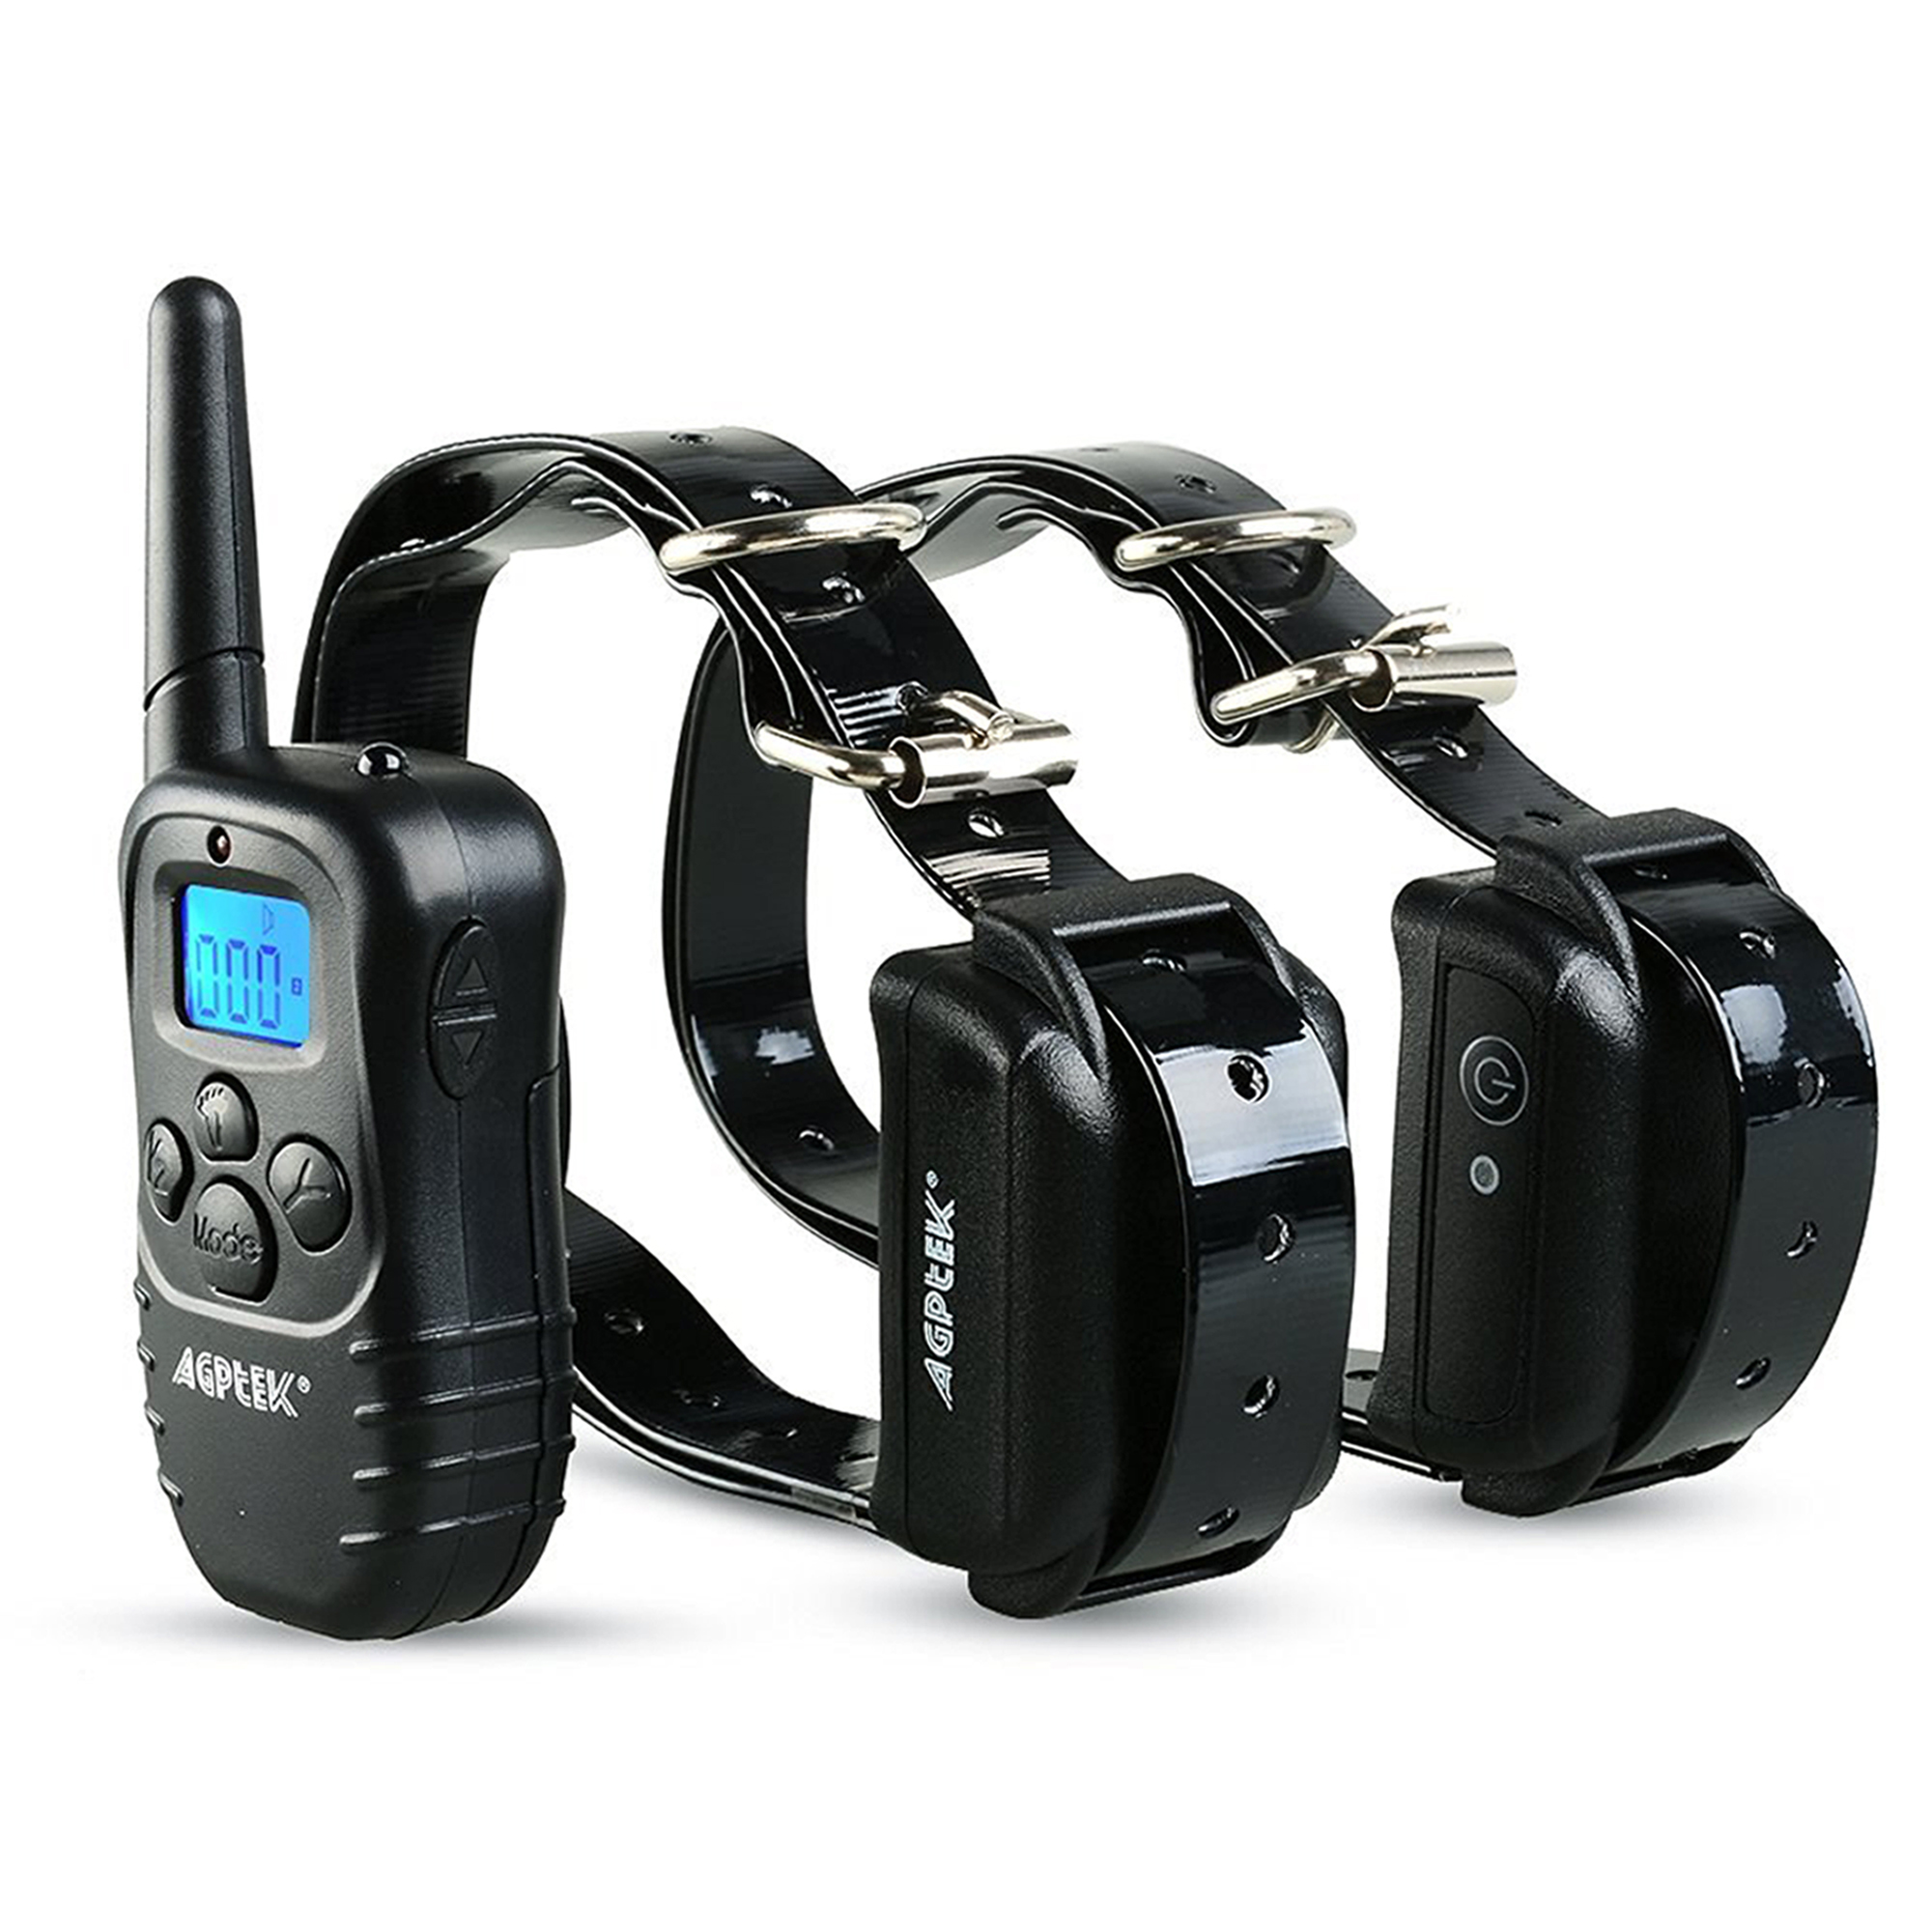 AGPtek Reable Waterproof 2 Dog Training Collar 100 Level Shock Vibra LCD Remote